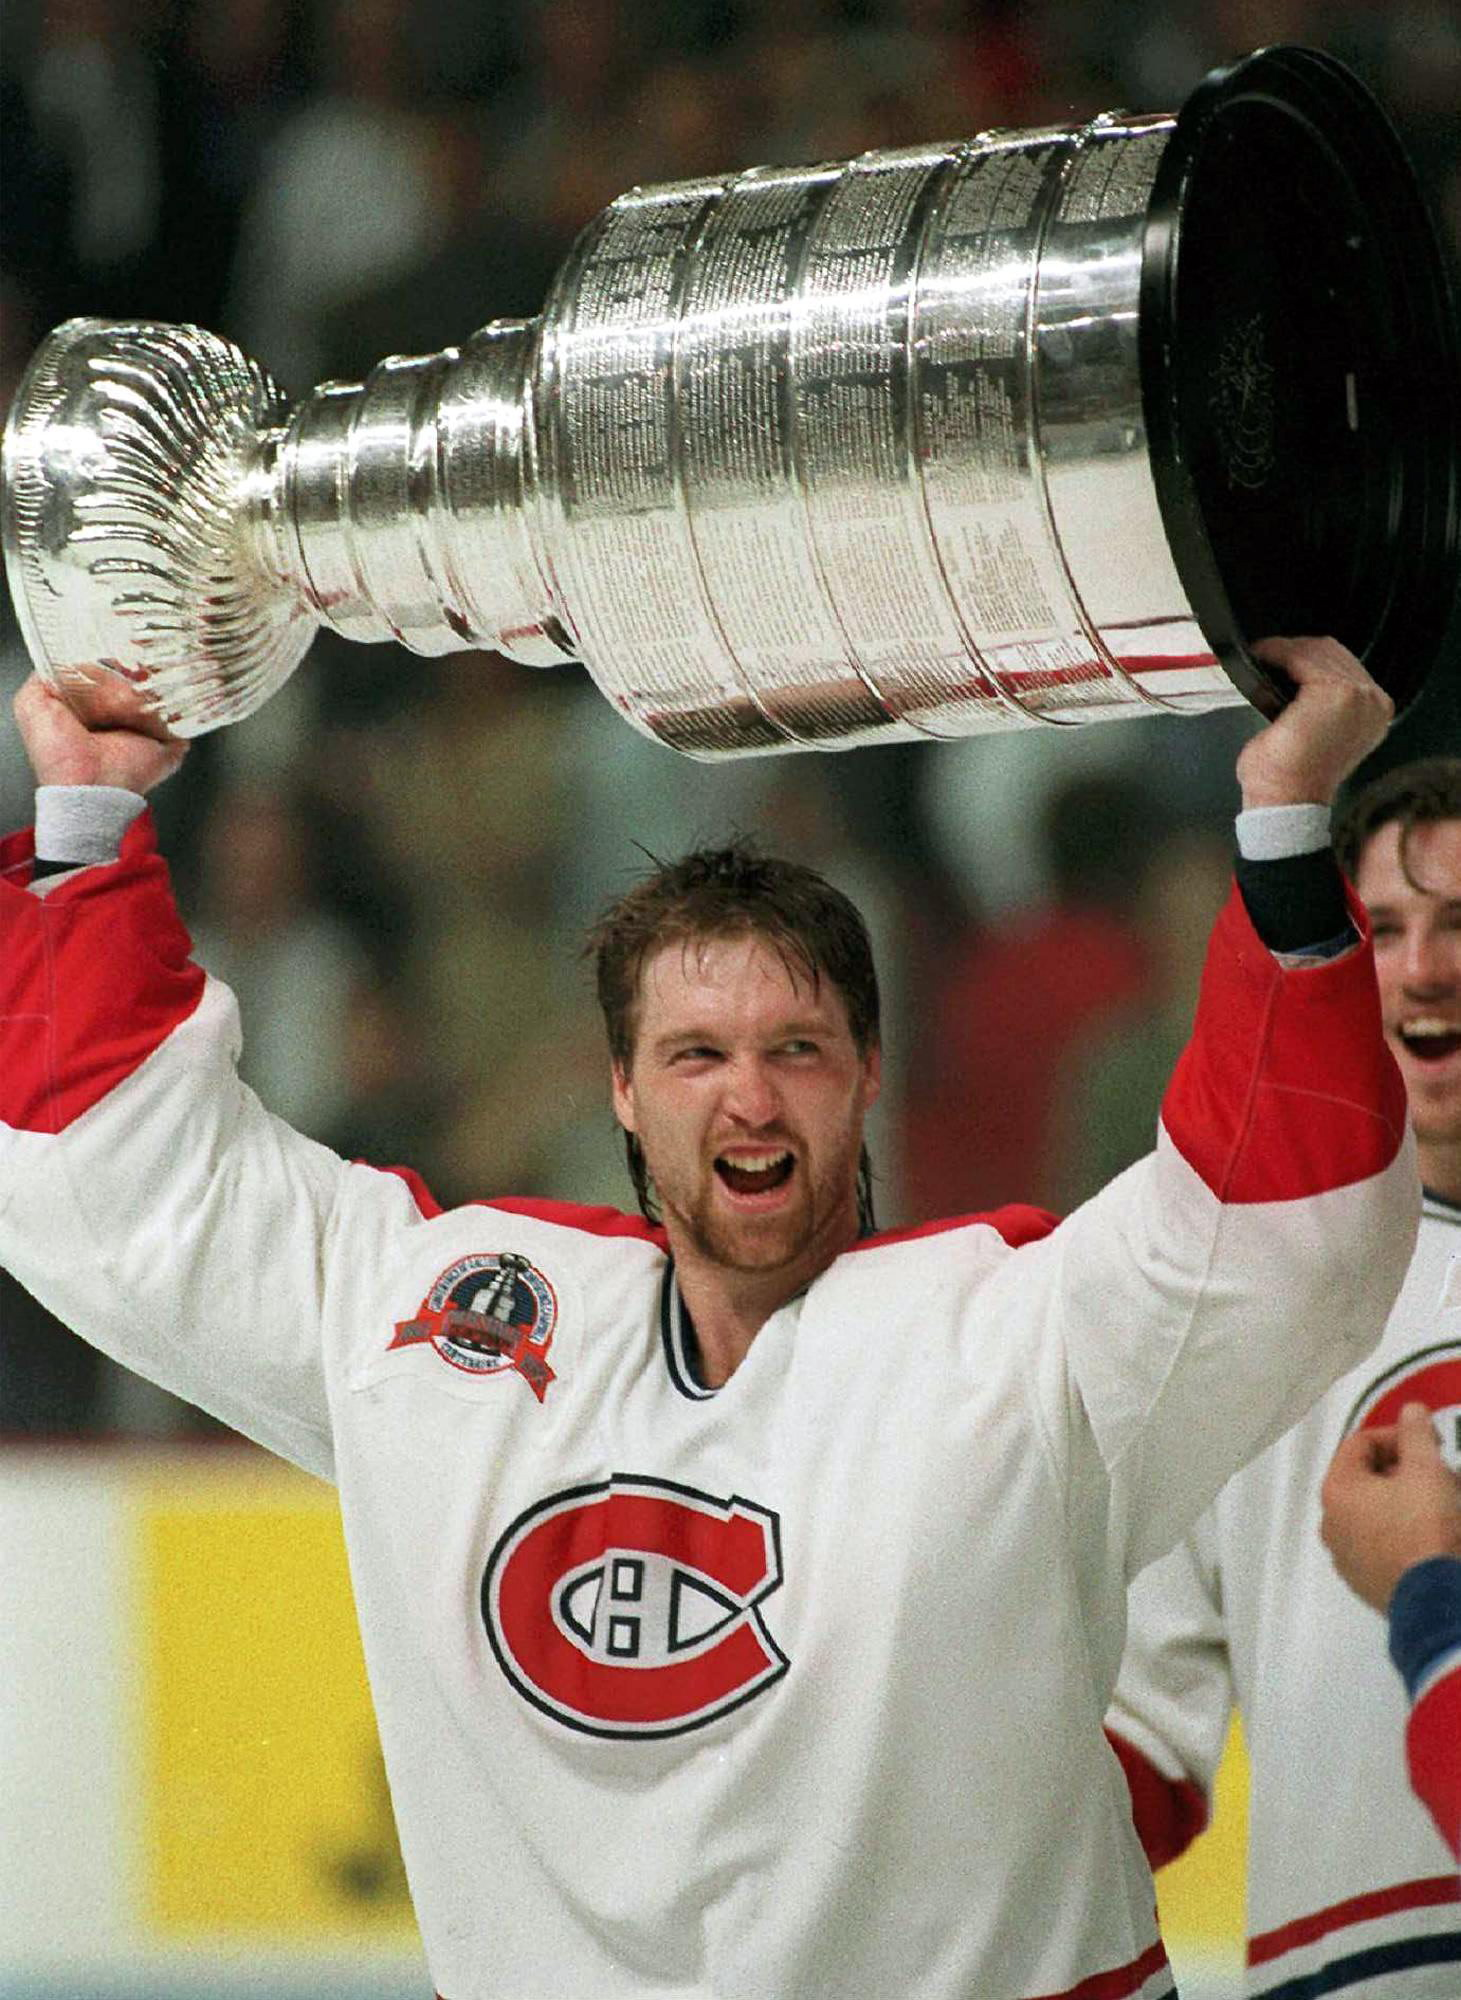 FILE - In this June 9, 1993,  file photo, Montreal Canadiens goalie Patrick Roy hoists the Stanley Cup Trophy after the Canadiens defeated the Los Angeles Kings to win the Stanley Cup, in Montreal. Roy was a talented tennis player and swimmer, one of the